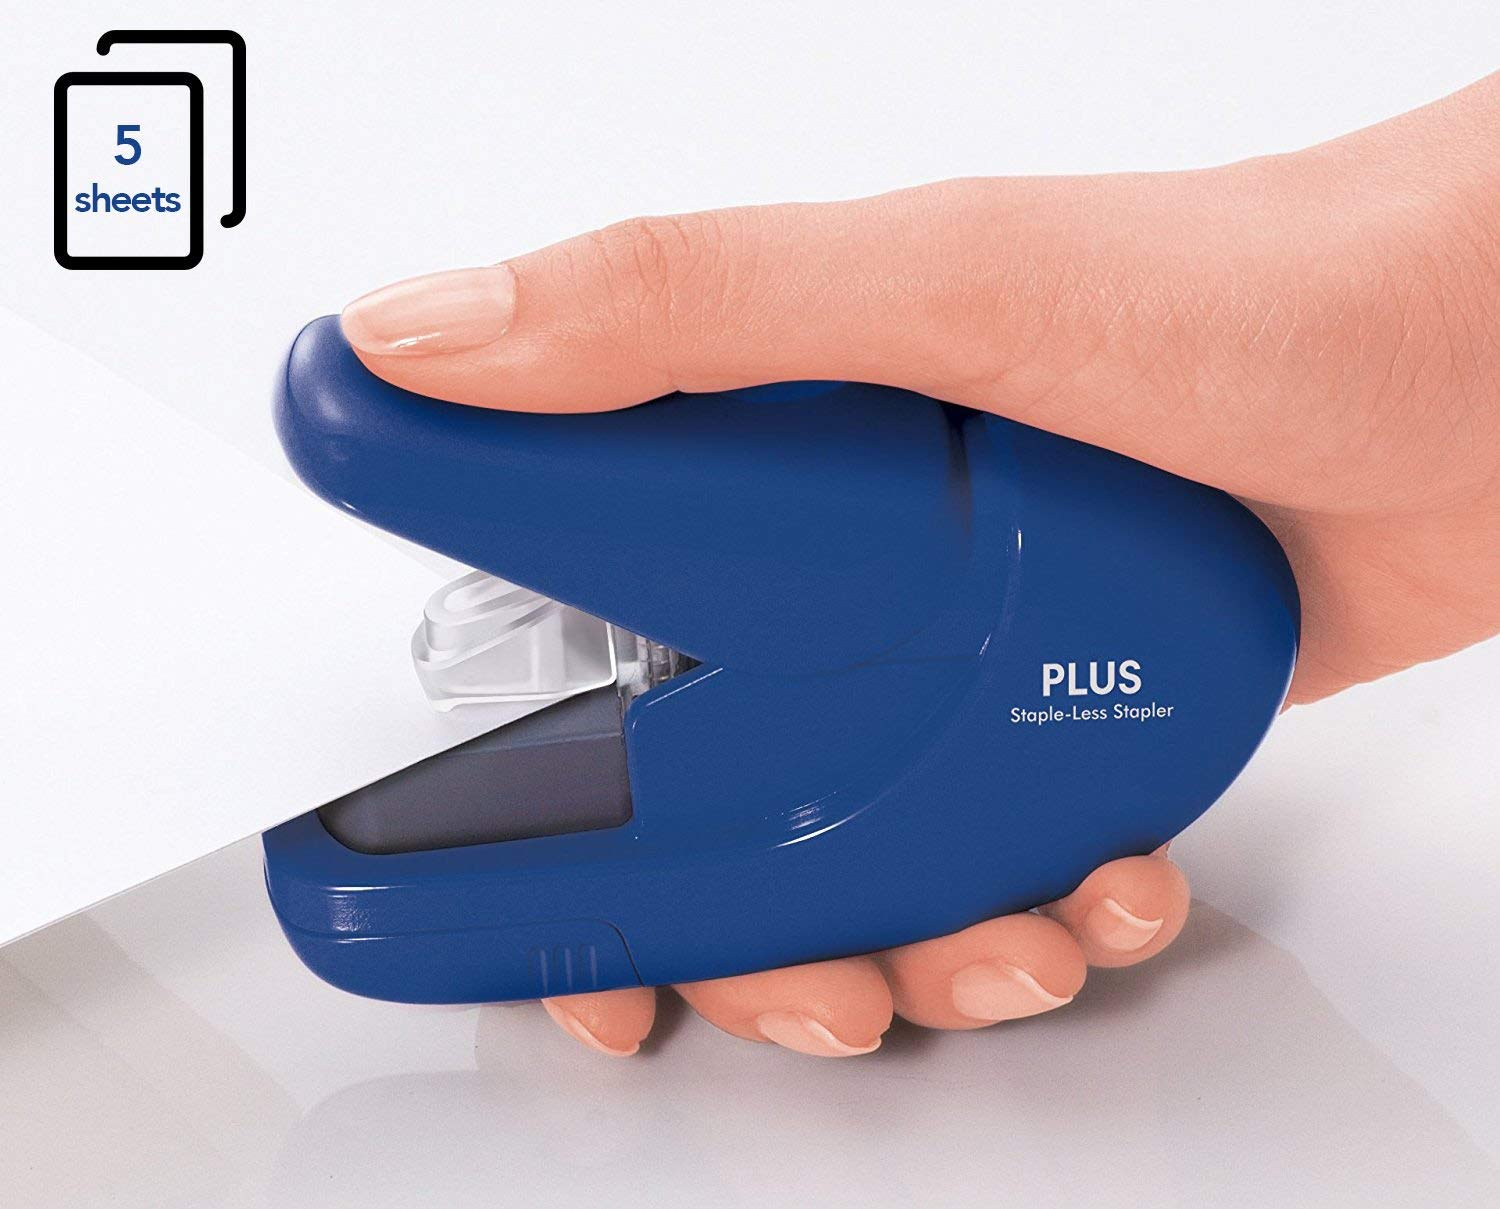 Half Price PLUS Japan, Staple-Free Stapler Blue, 5 sheet capacity at Amazon